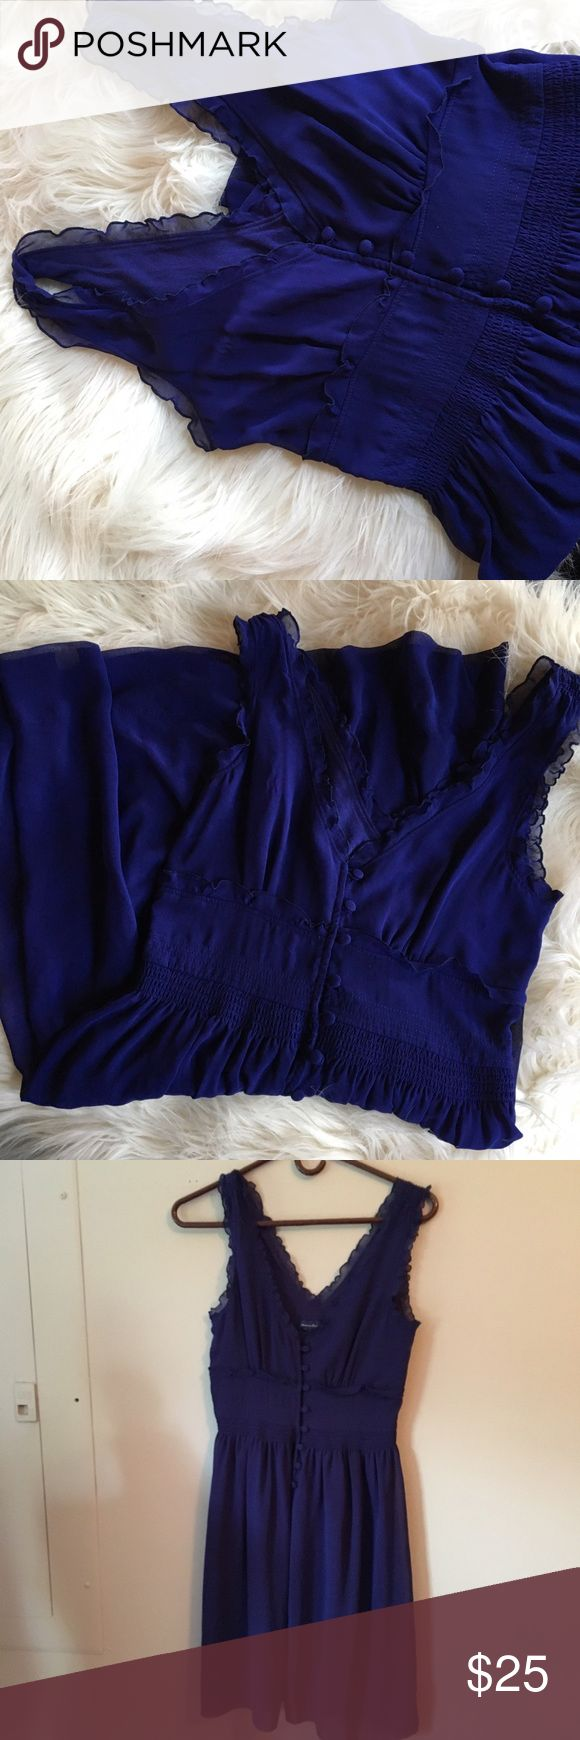 Blue American Eagle dress Pretty flowey dress. Worn a few times. In great condition. From a smoke free home. American Eagle Outfitters Dresses Midi